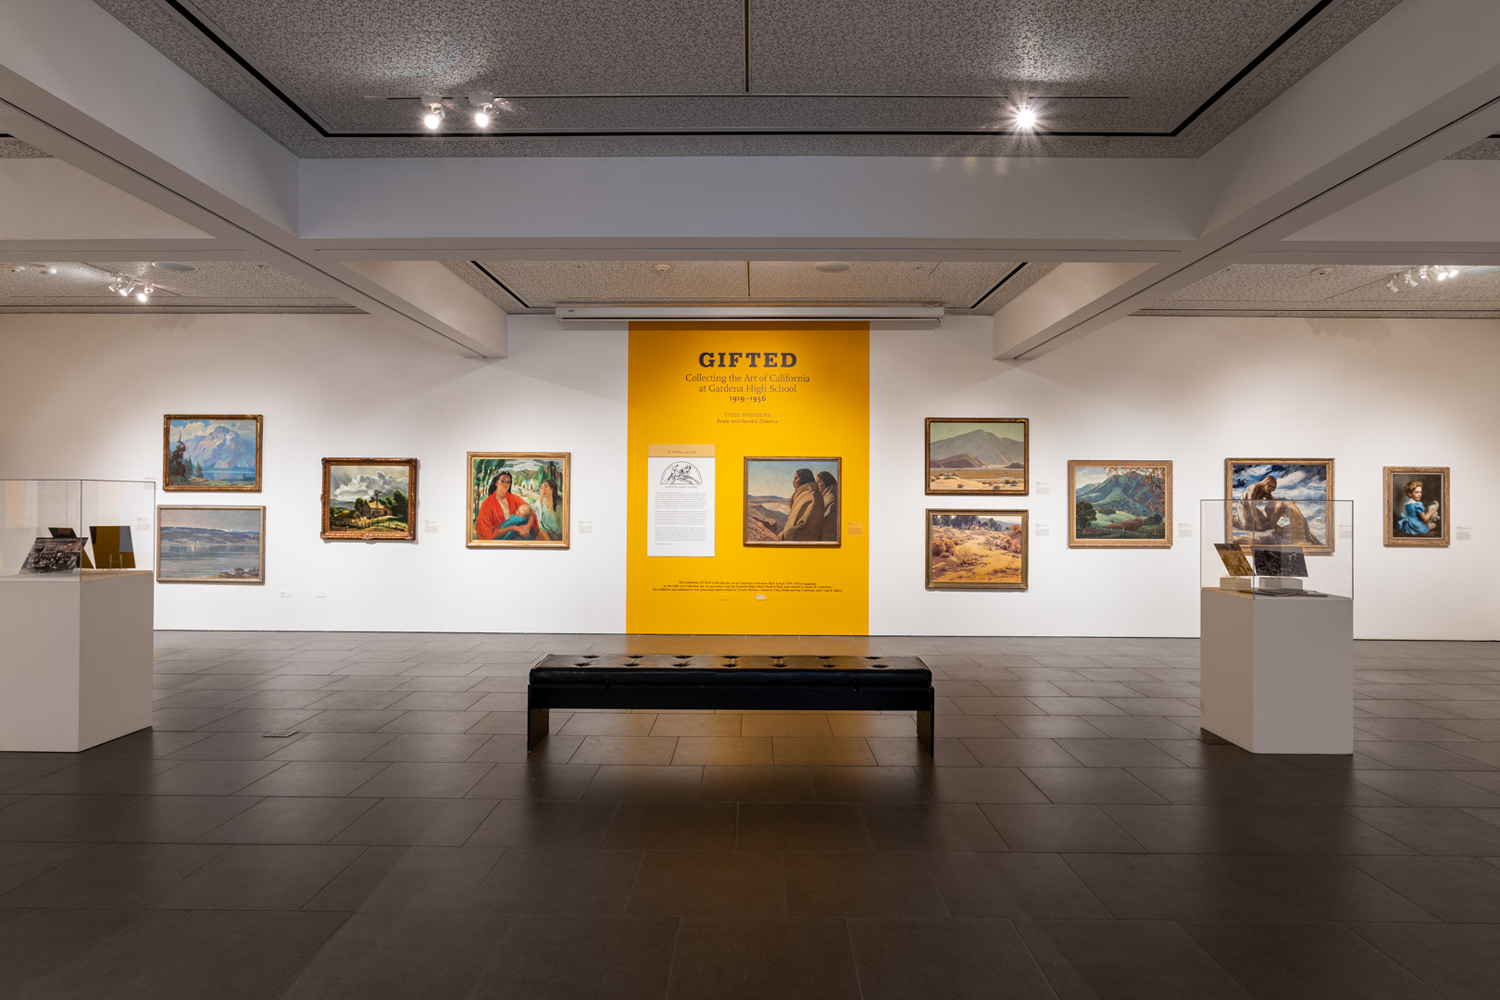 GIFTED: Collecting the Art of California at Gardena High School, 1919-1956